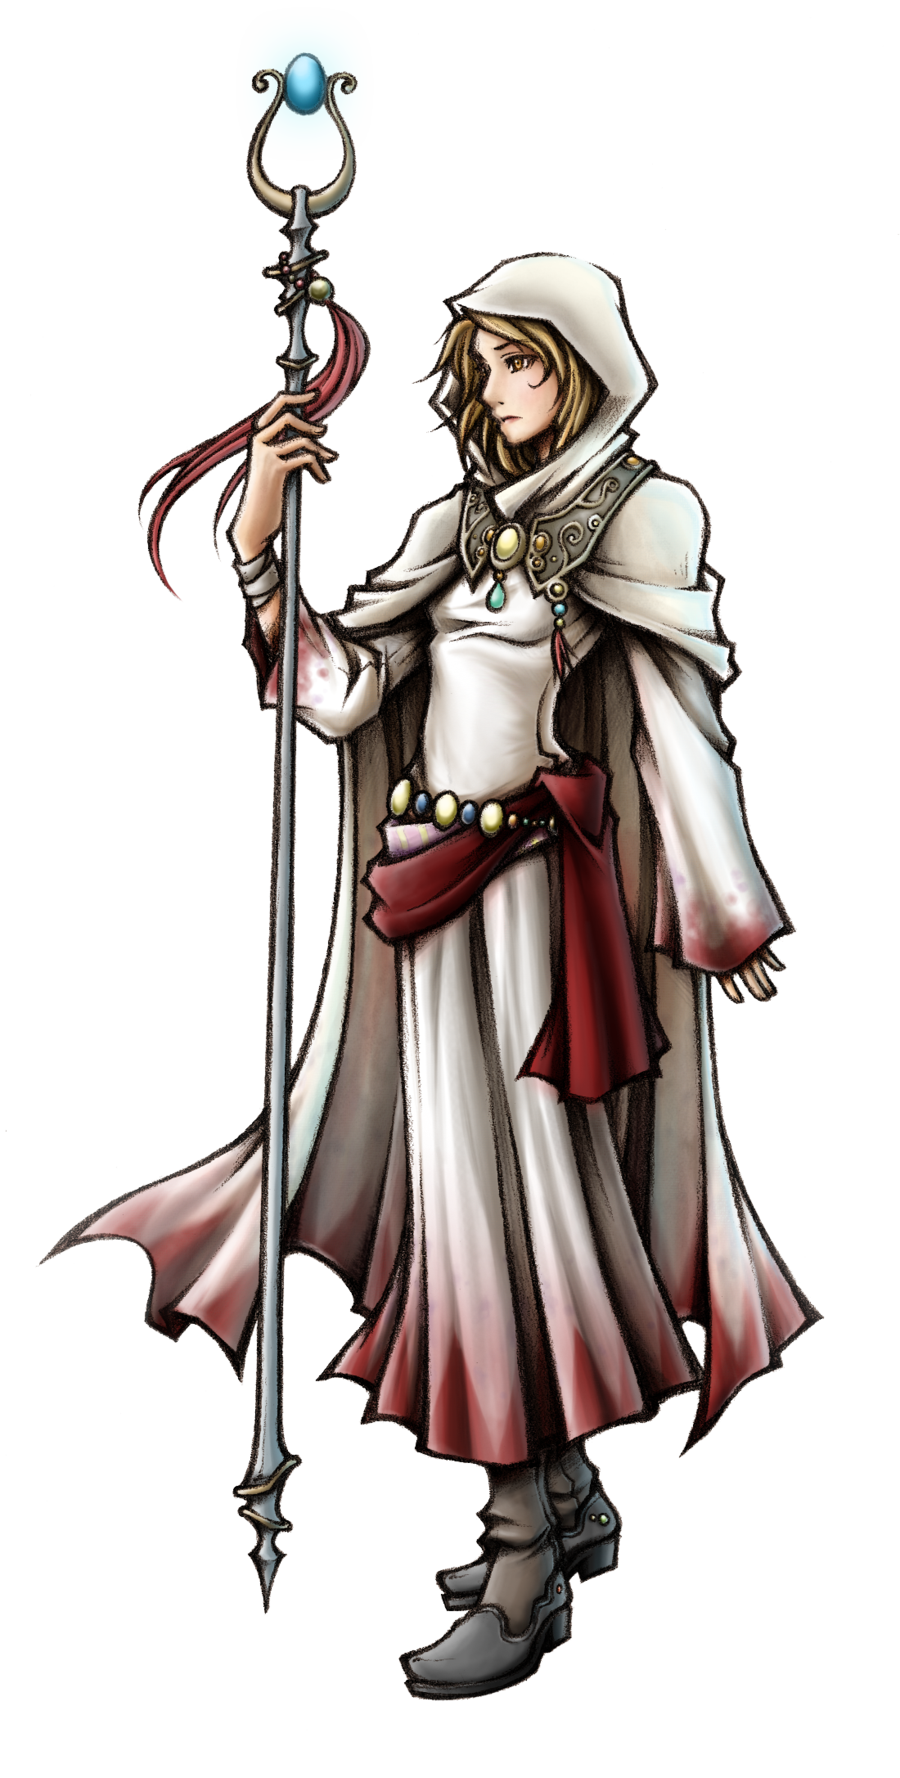 Bard drawing sorcerer. Tg traditional games thread